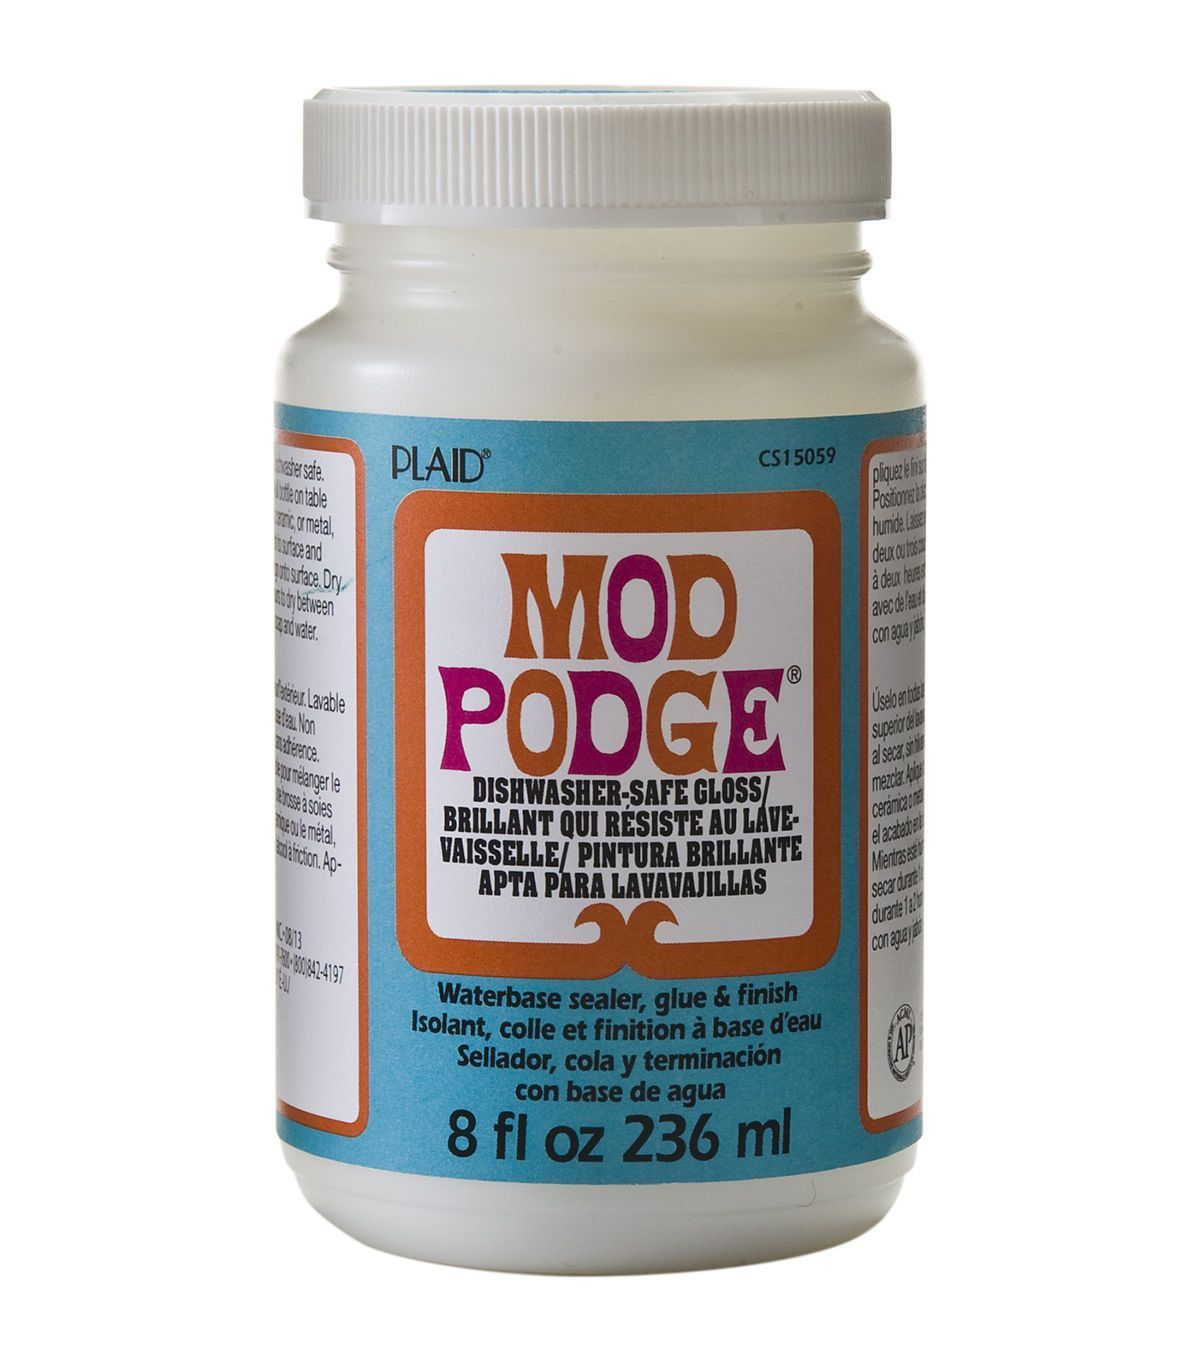 Mod Podge Dishwasher Safe 8oz-Gloss #decopodge Mod Podge Dishwasher Safe 8oz - Gloss #decopodge